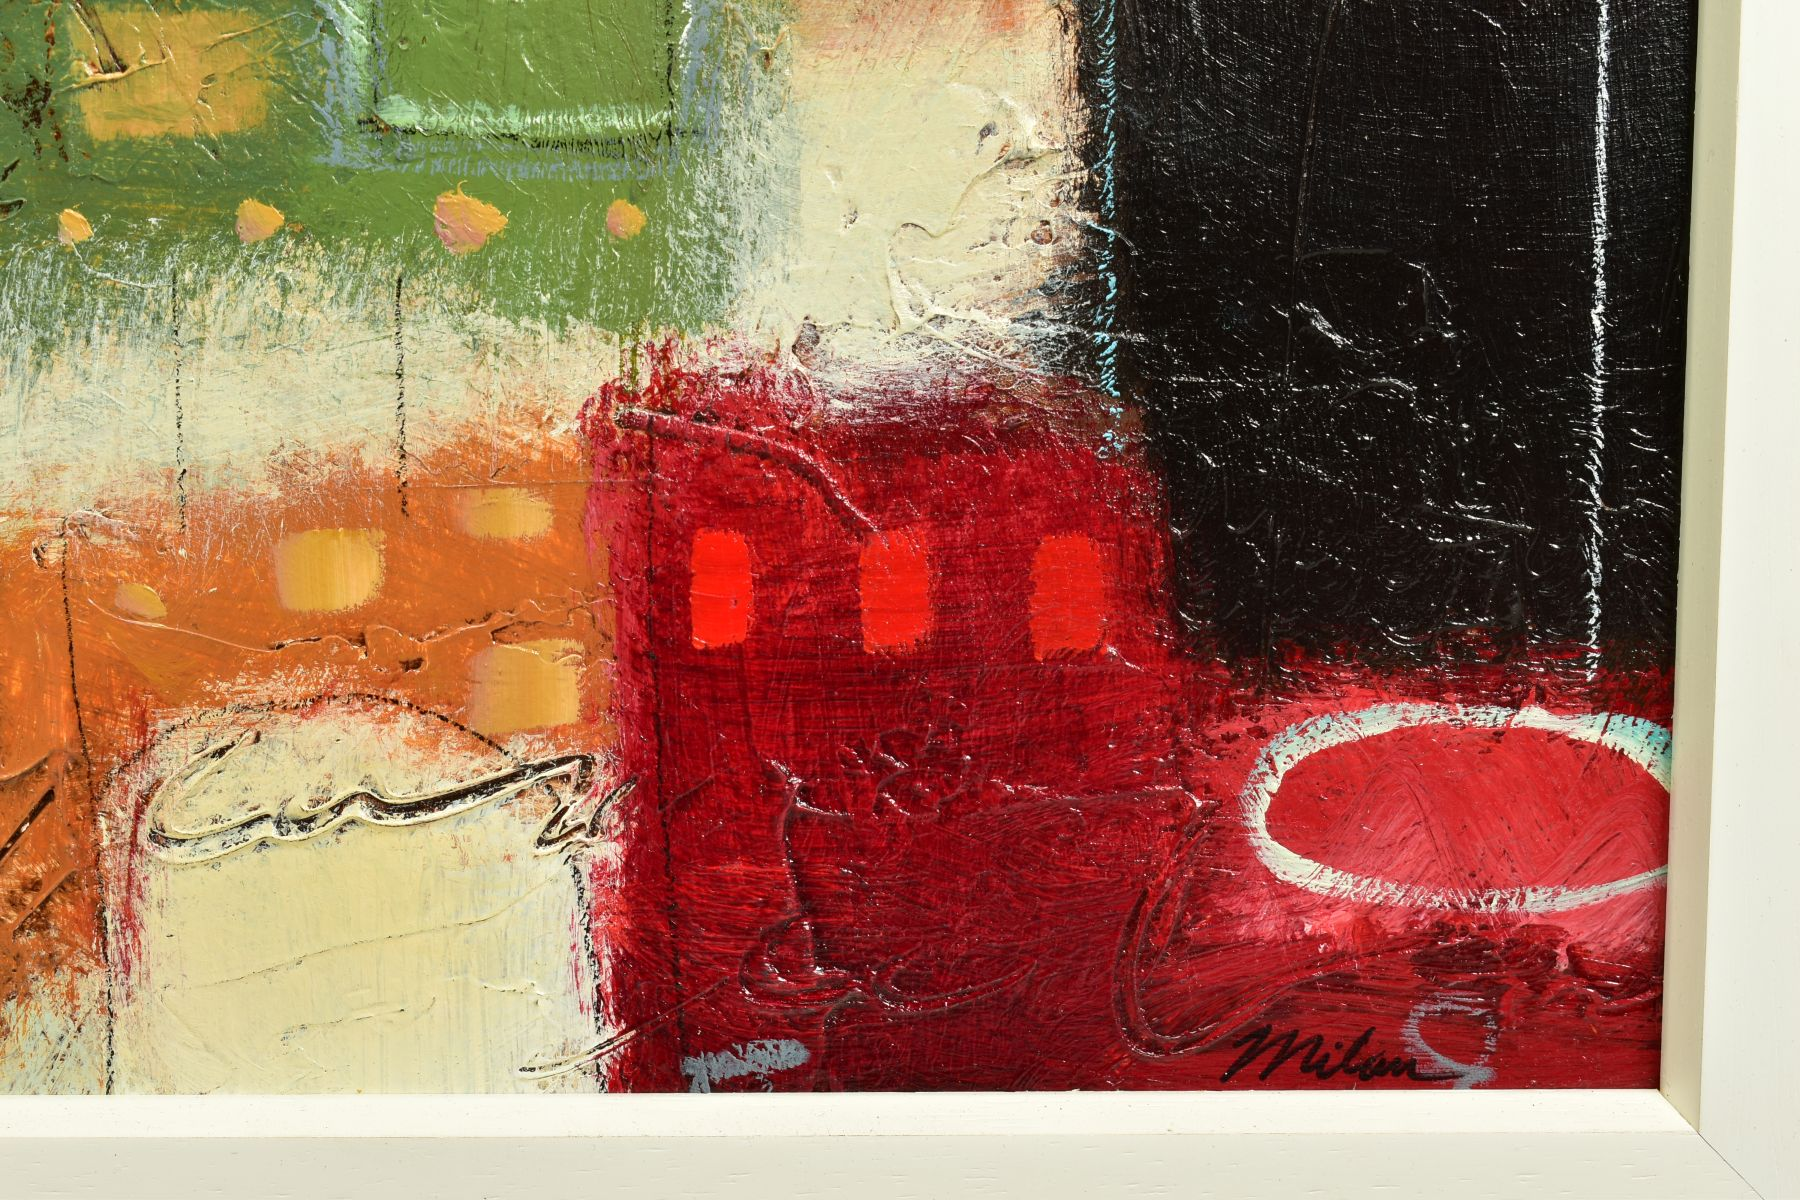 JOHN MILAN (AMERICAN CONTEMPORARY), 'Urban Continuum III', a colourful abstract composition, - Image 4 of 6